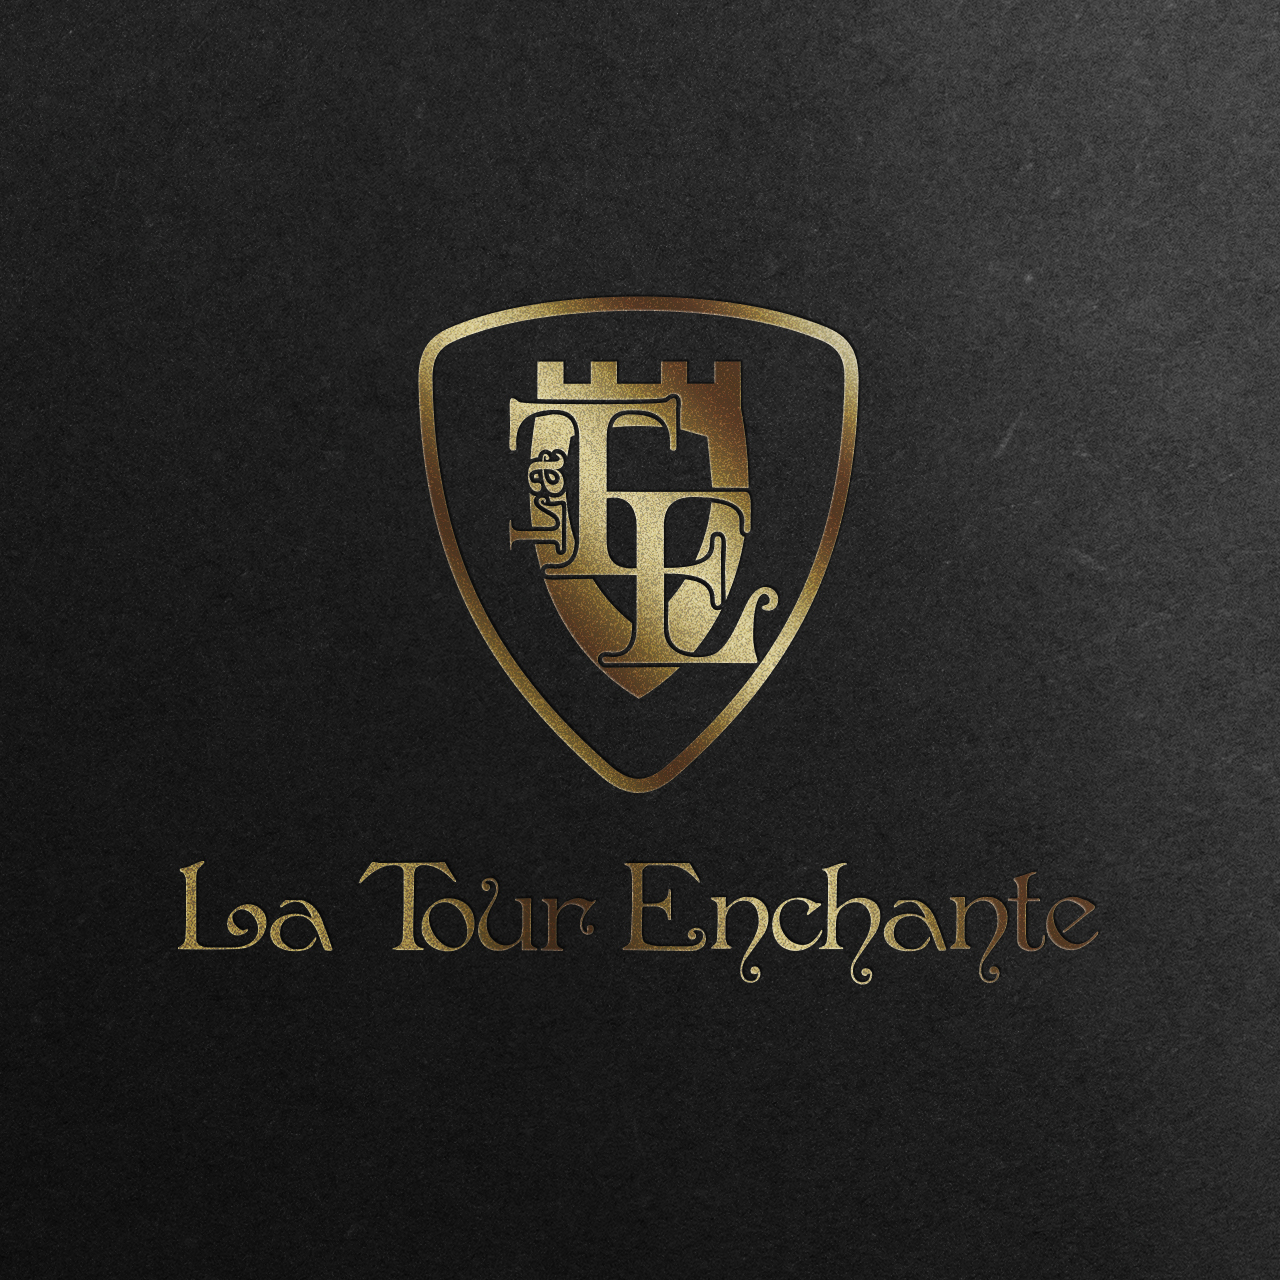 la tour enchante-logo-mockup-gold